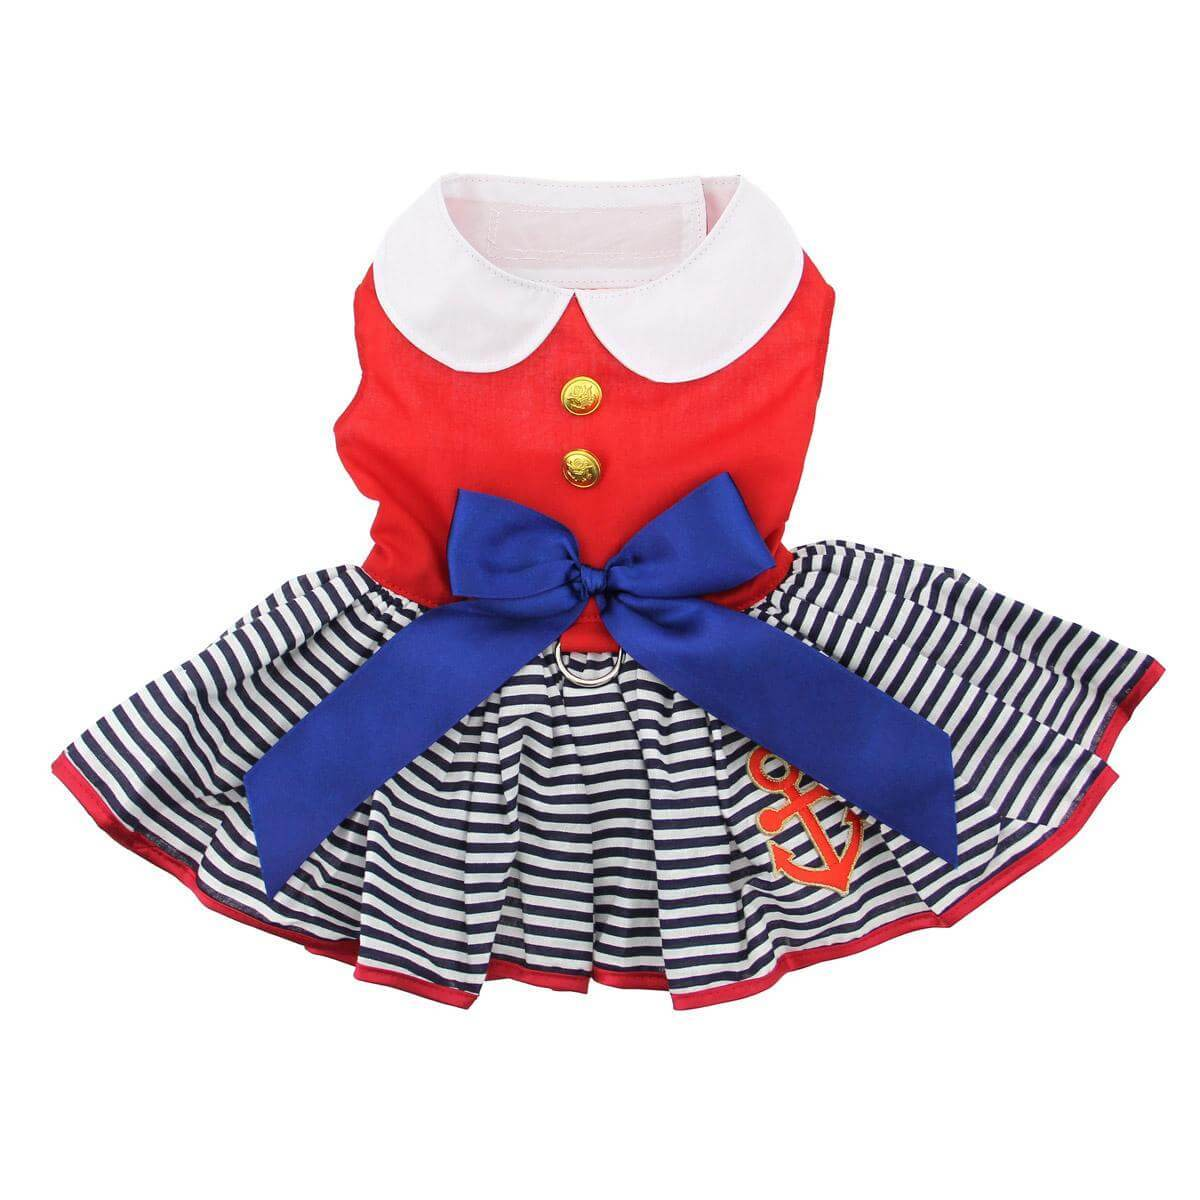 sailor girl dog dress - back